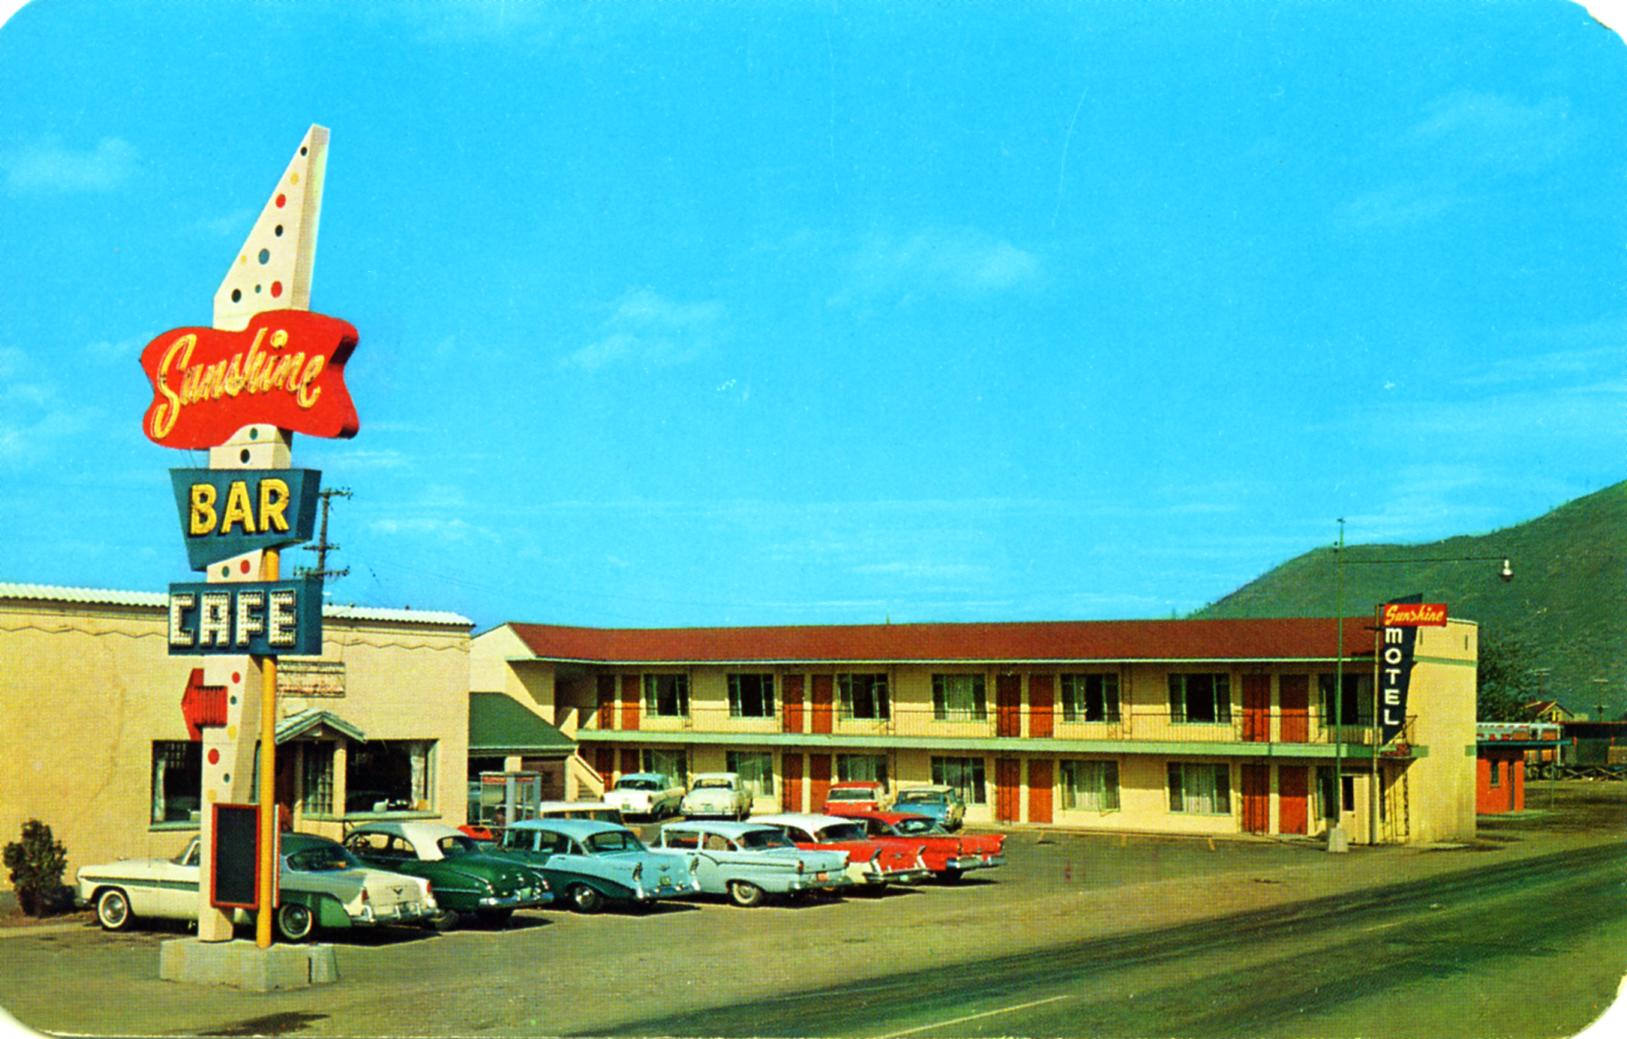 Sunshine Motel - 301 West Cameron Avenue, Kellogg, Idaho U.S.A. - 1950's